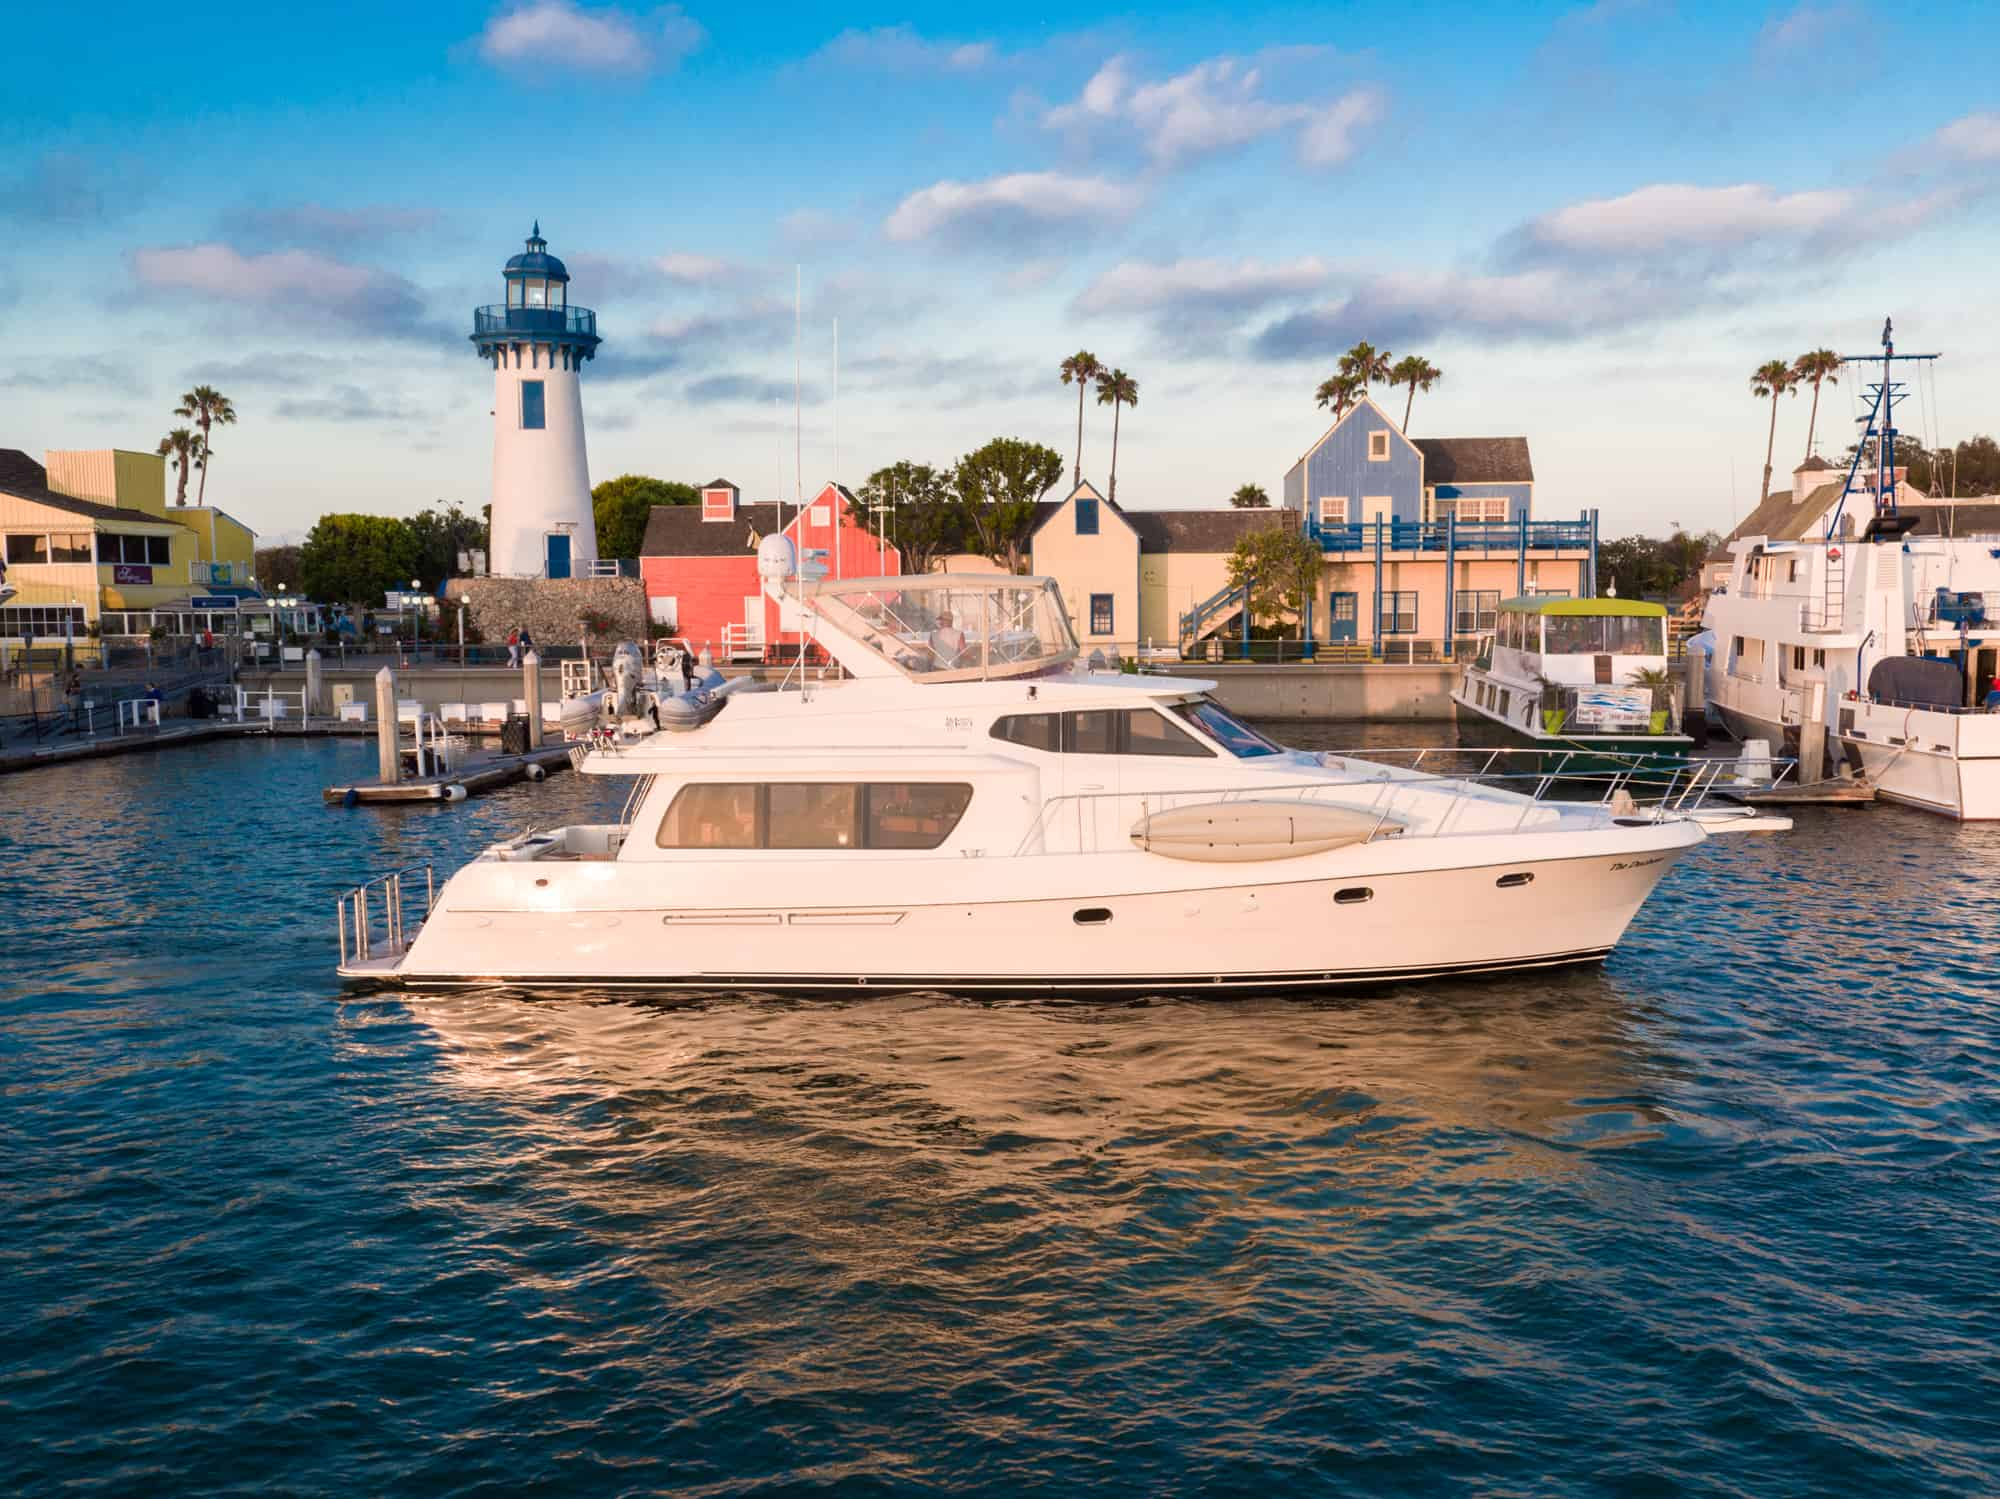 The Duchess Marina del Rey Harbor Cruise